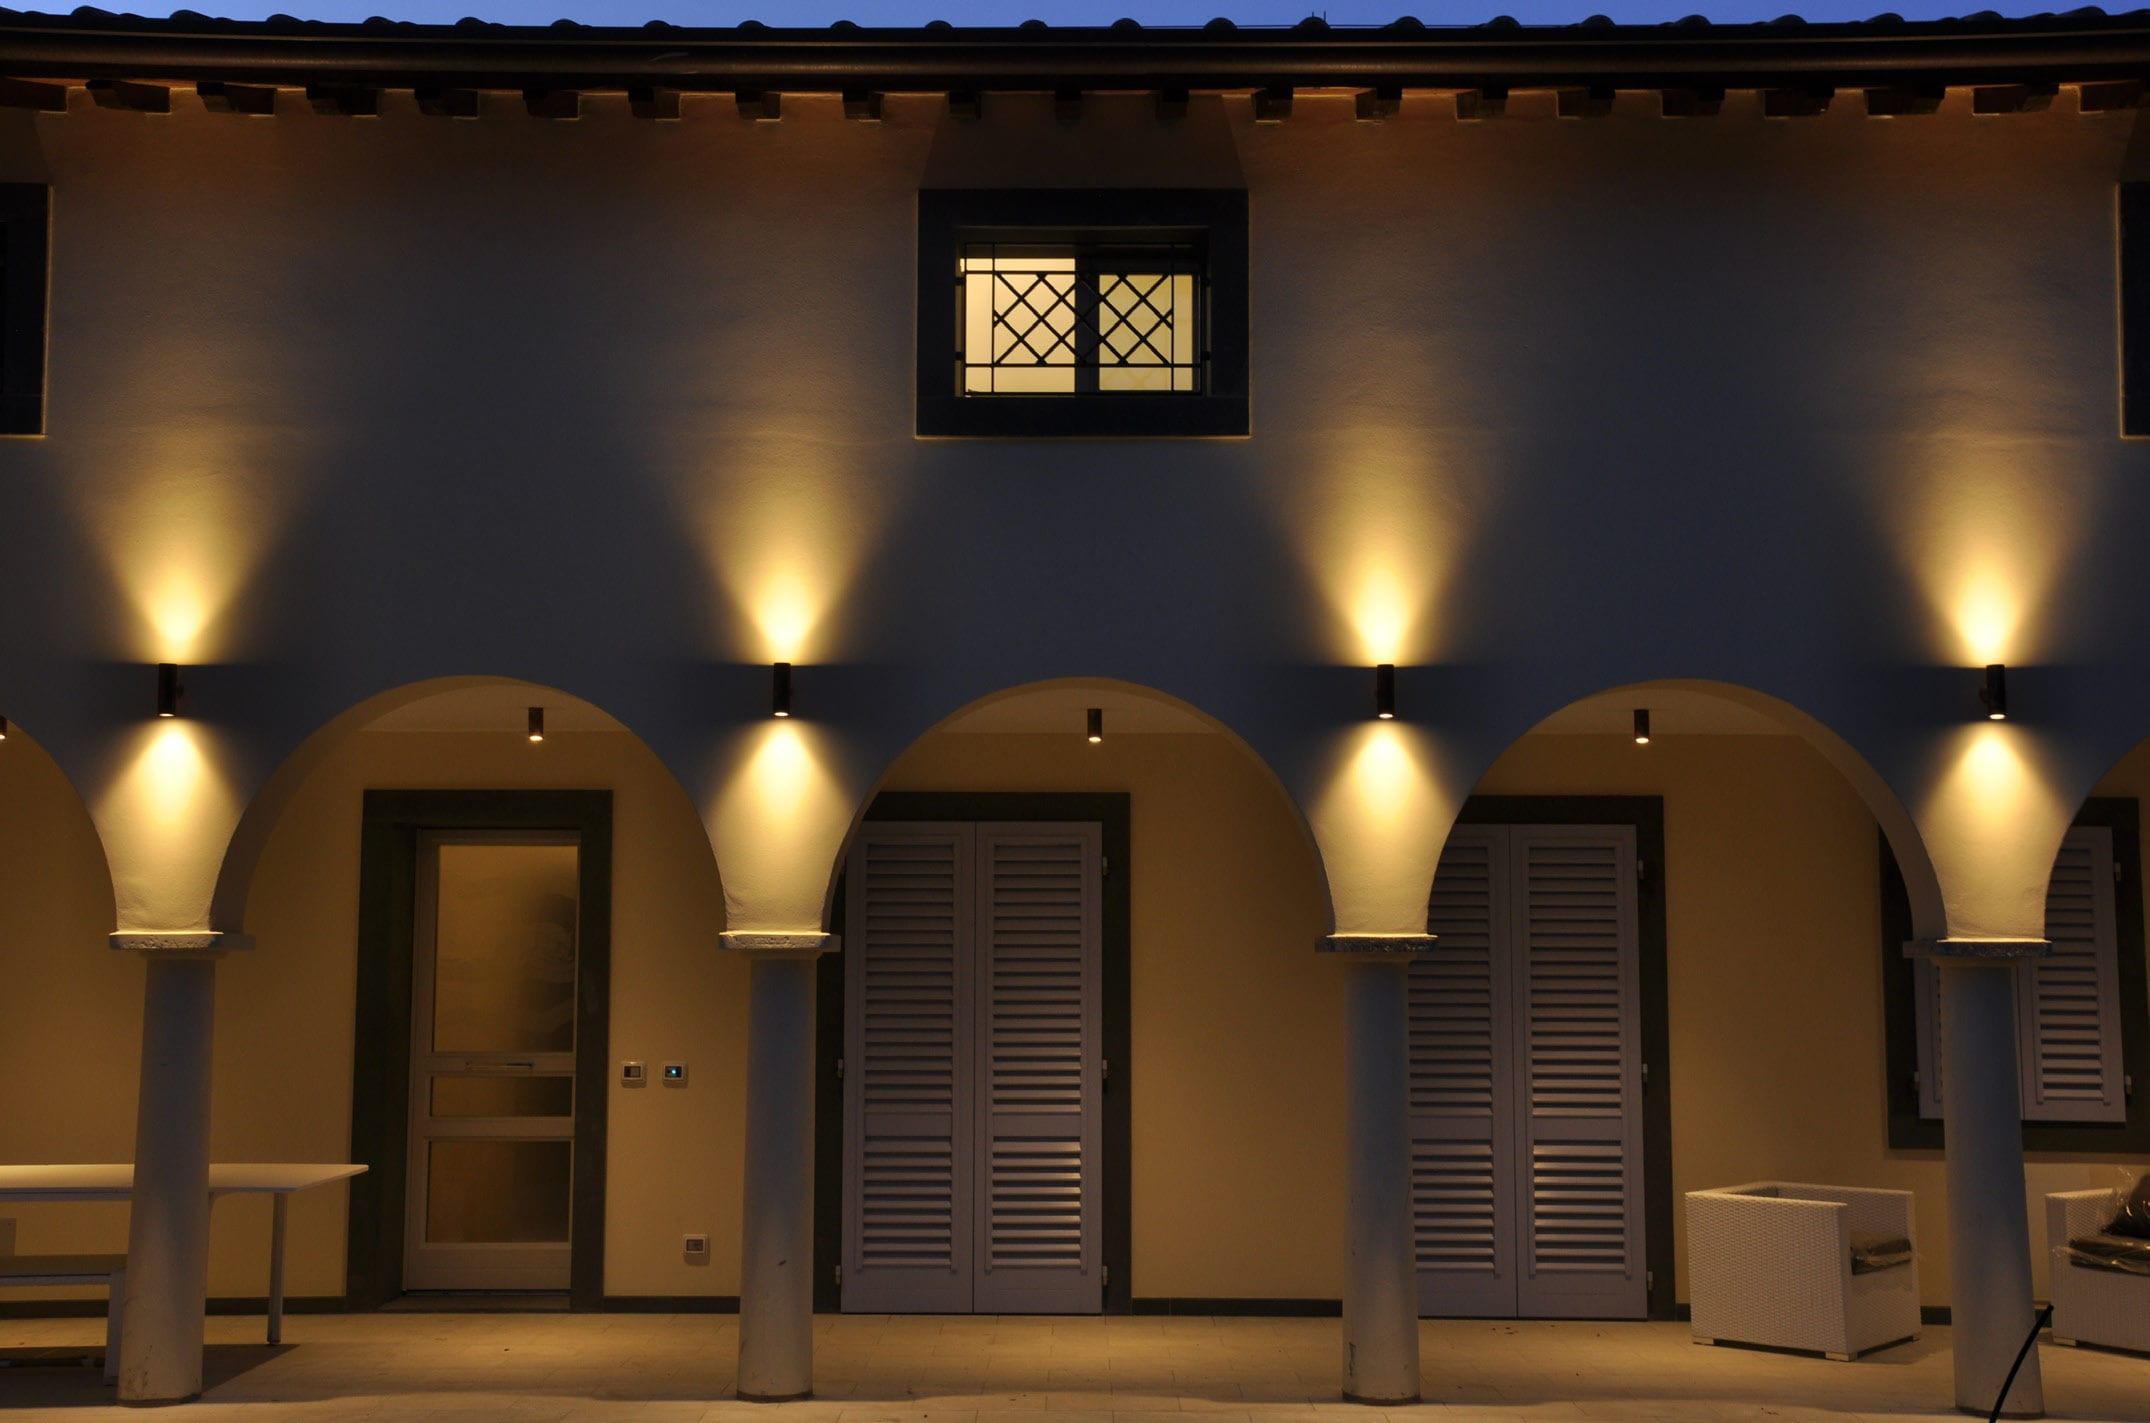 Contemporary Wall Light Outdoor Aluminum Brass Up Down. Led Strip Lighting & Up Down Outdoor Lighting Fixtures - Lilianduval azcodes.com